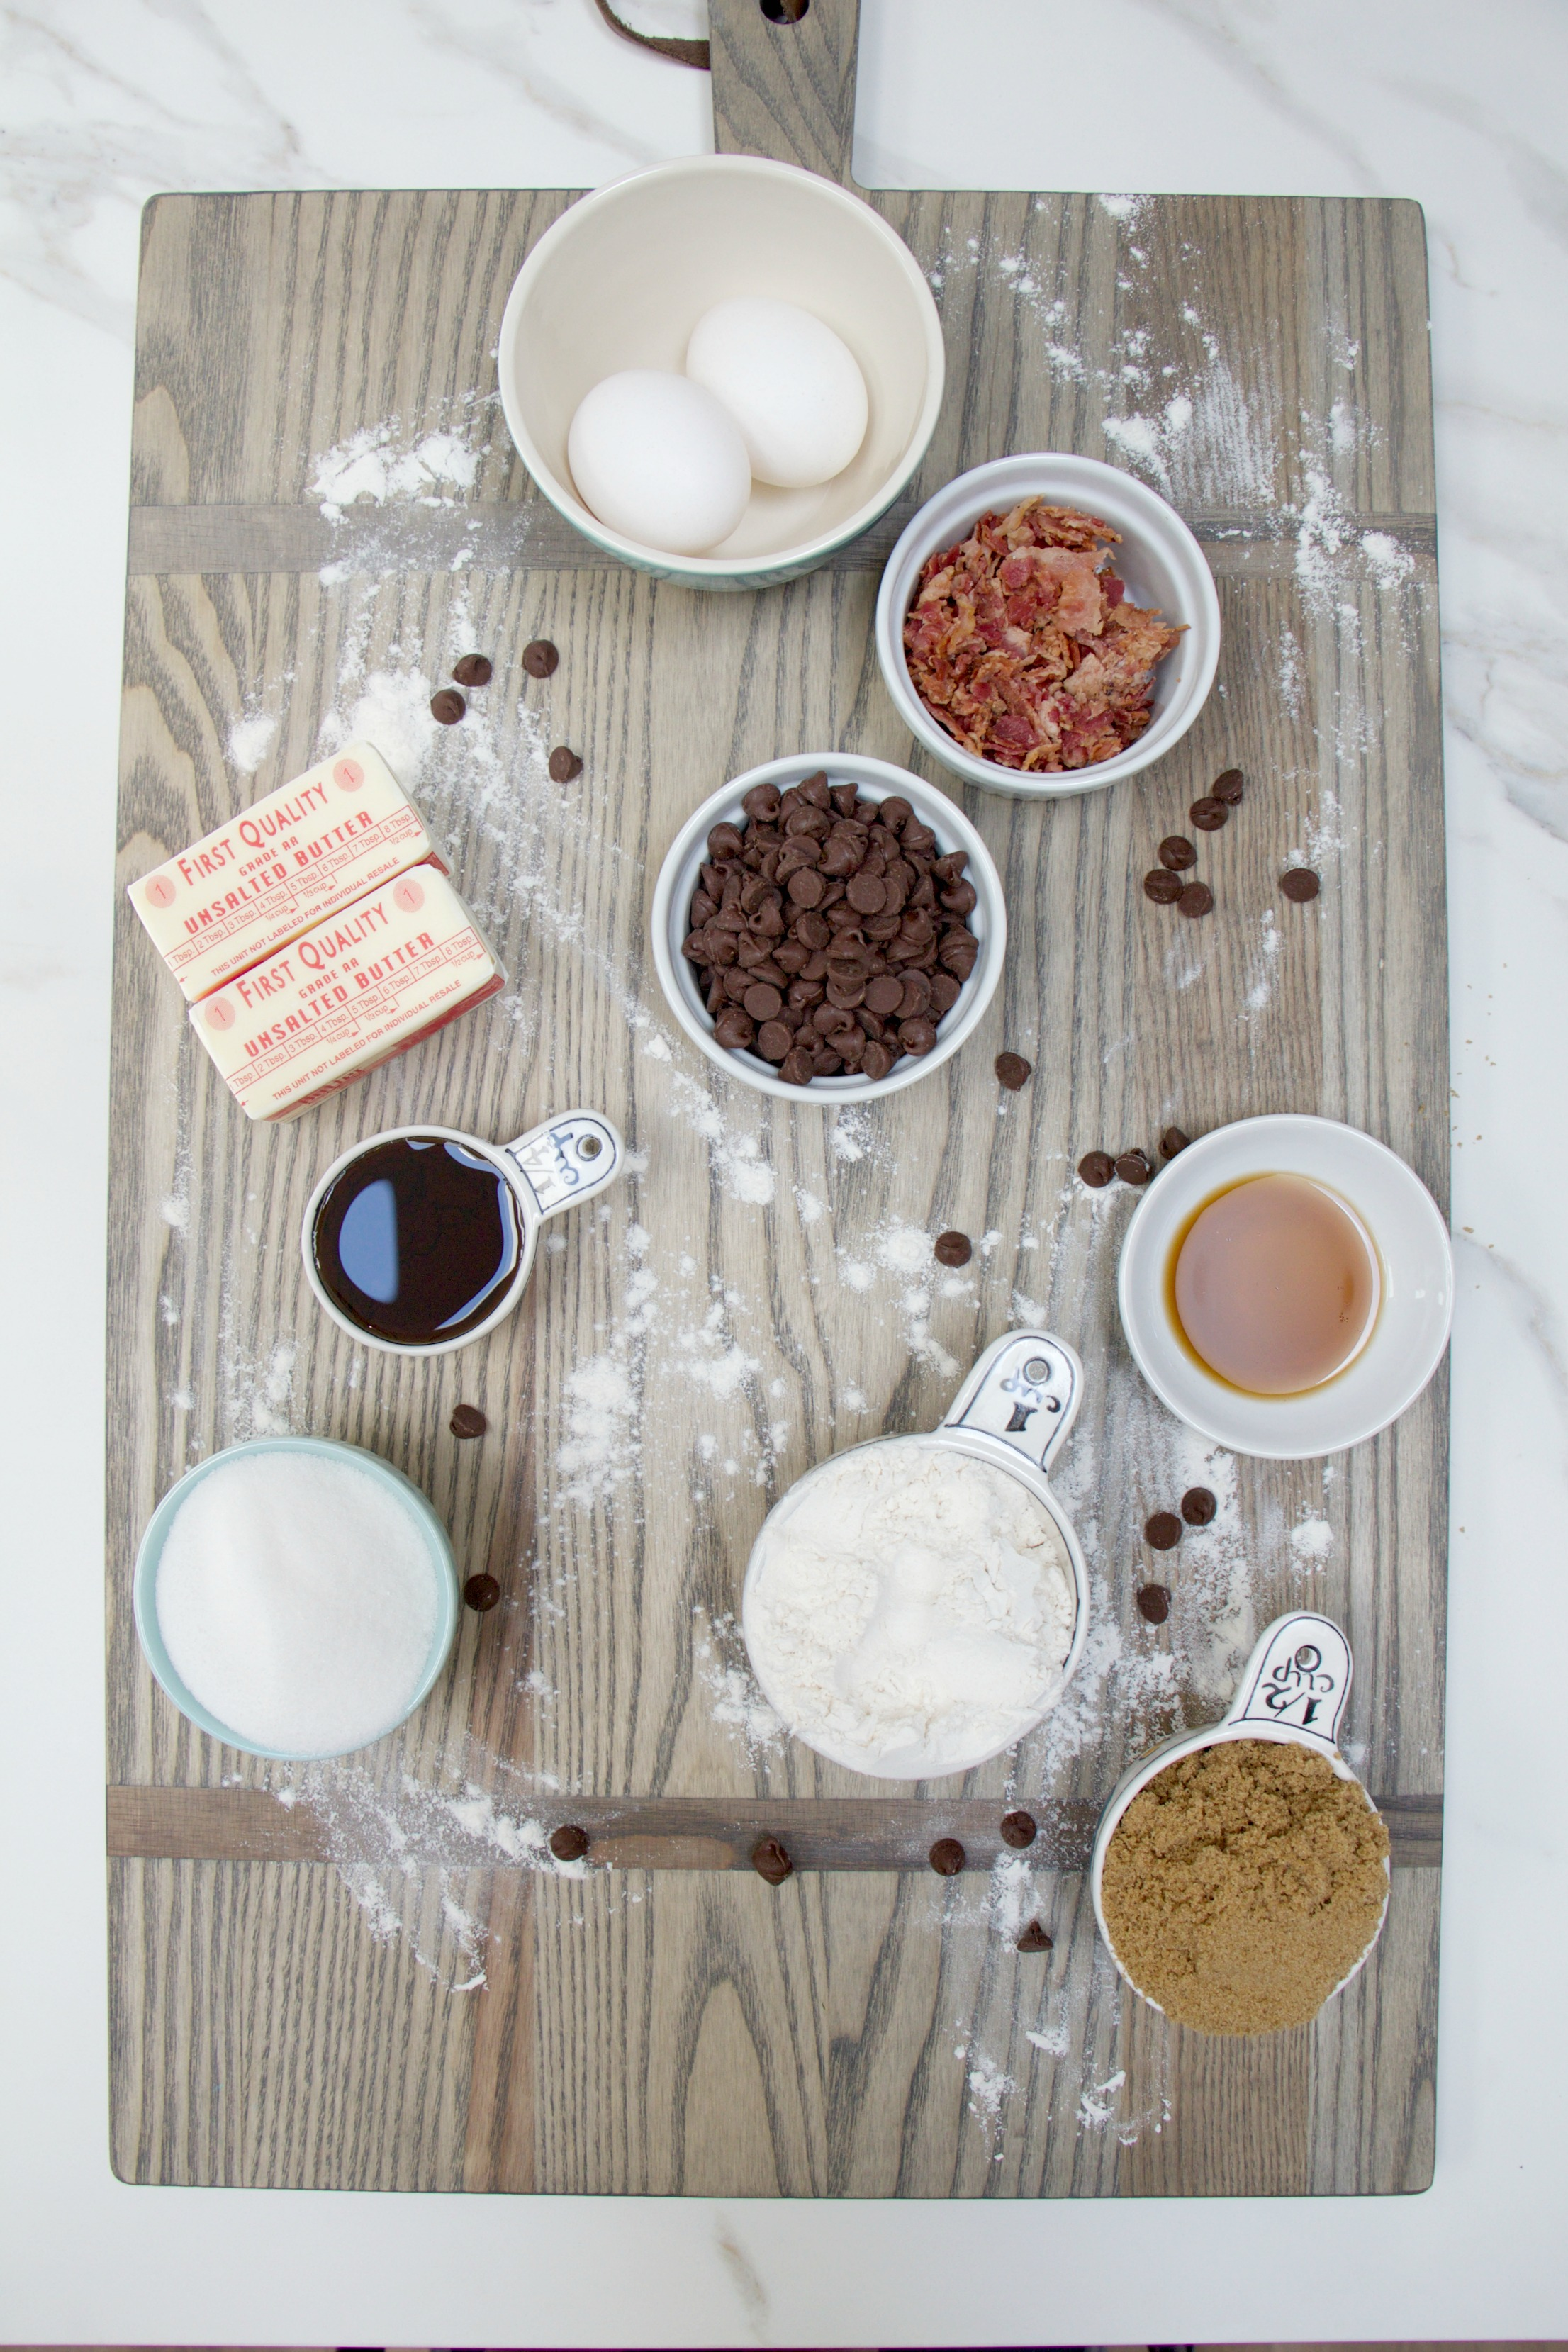 Maple Bacon Chocolate Chip Cookie Ingredients